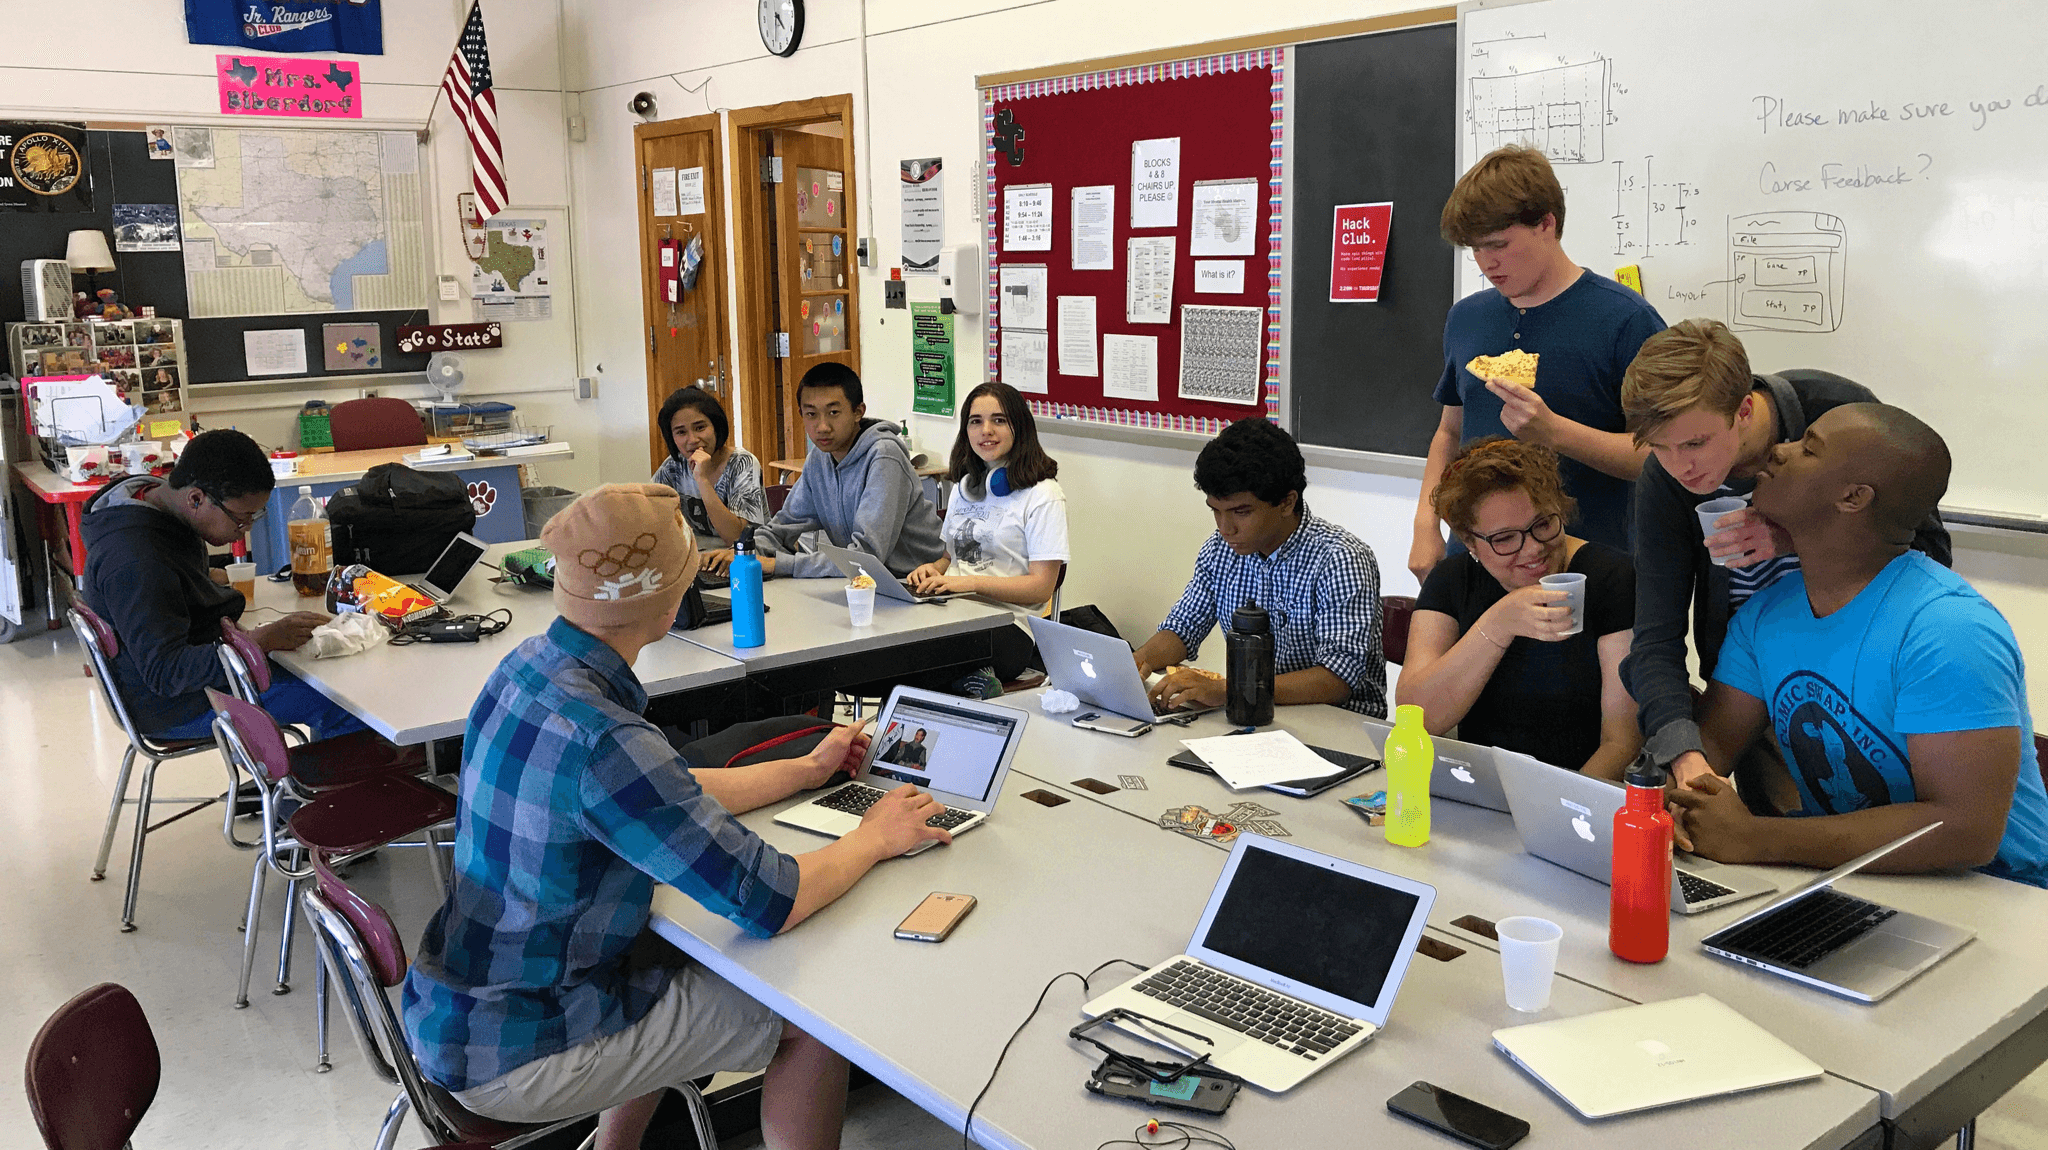 Hack Club meeting at State College Area High School, 2017-06-01